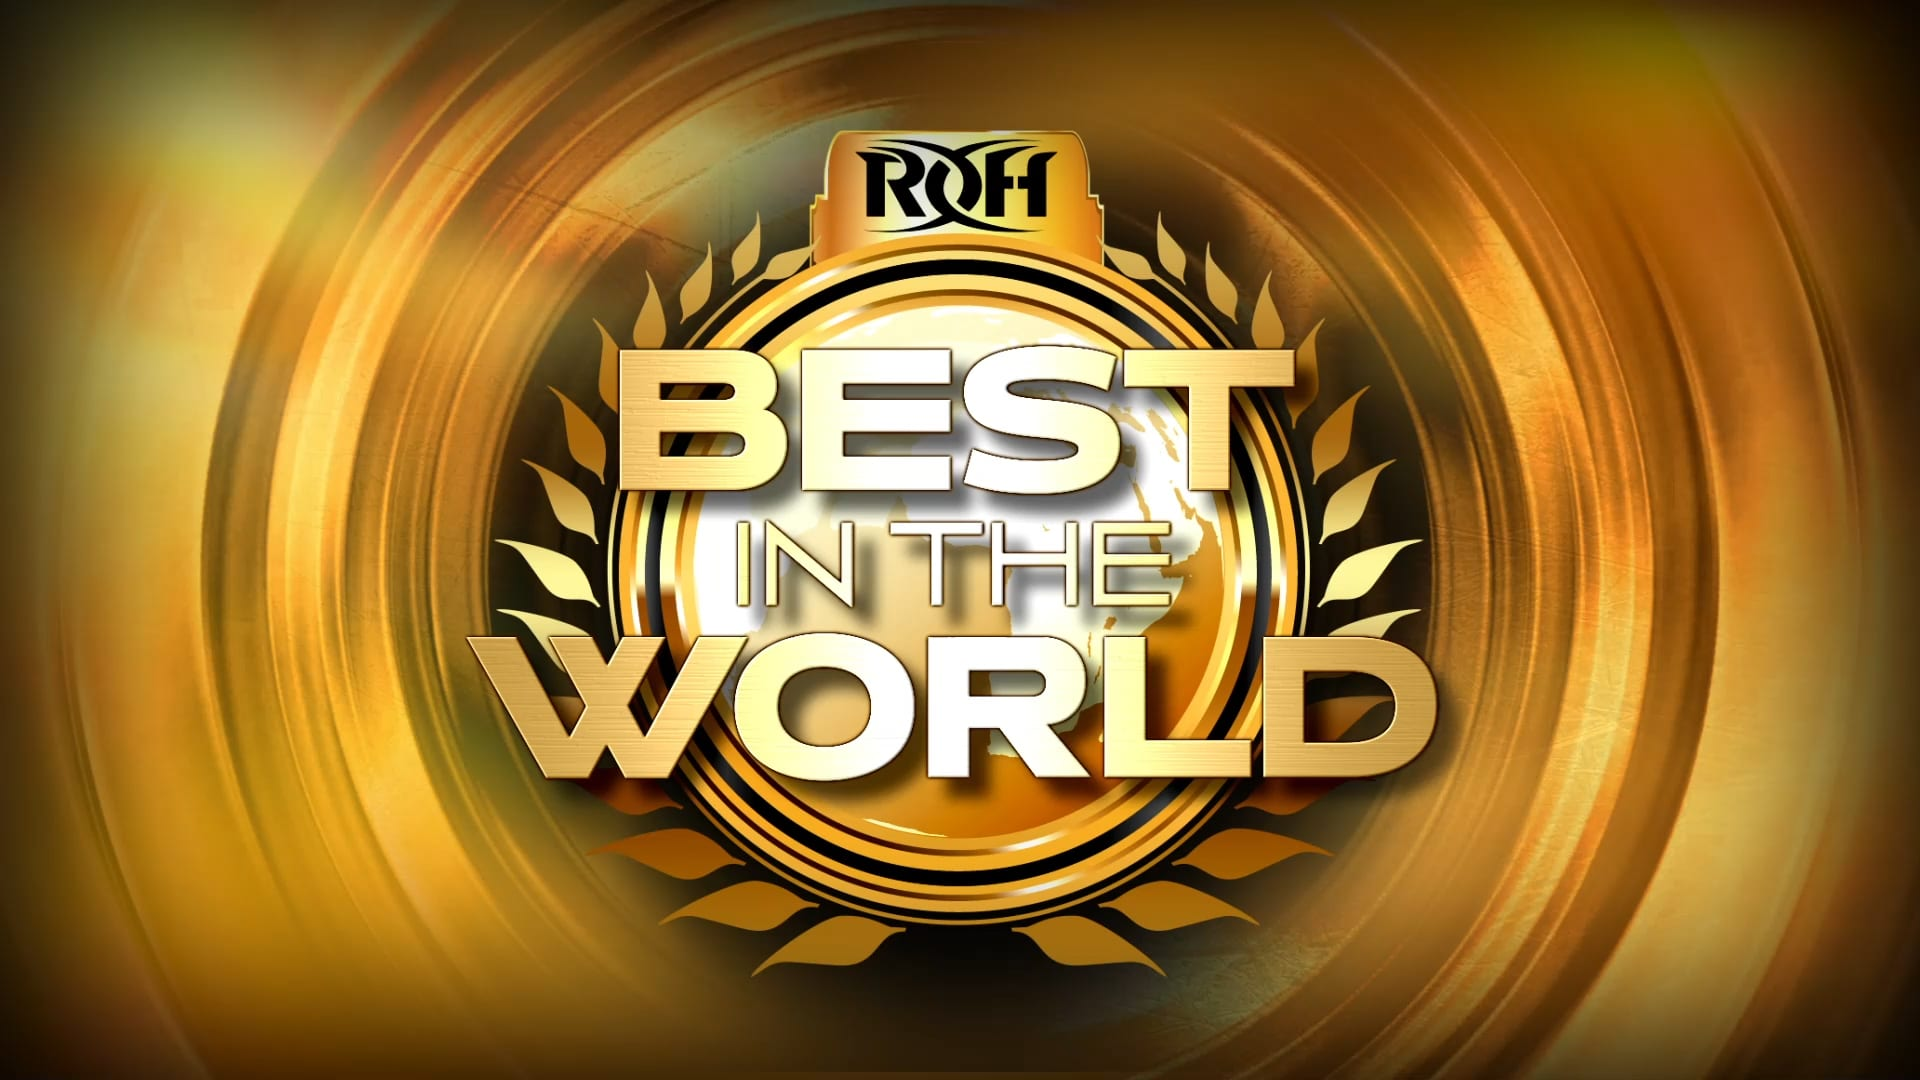 ROH Best In The World Results - July 11, 2021